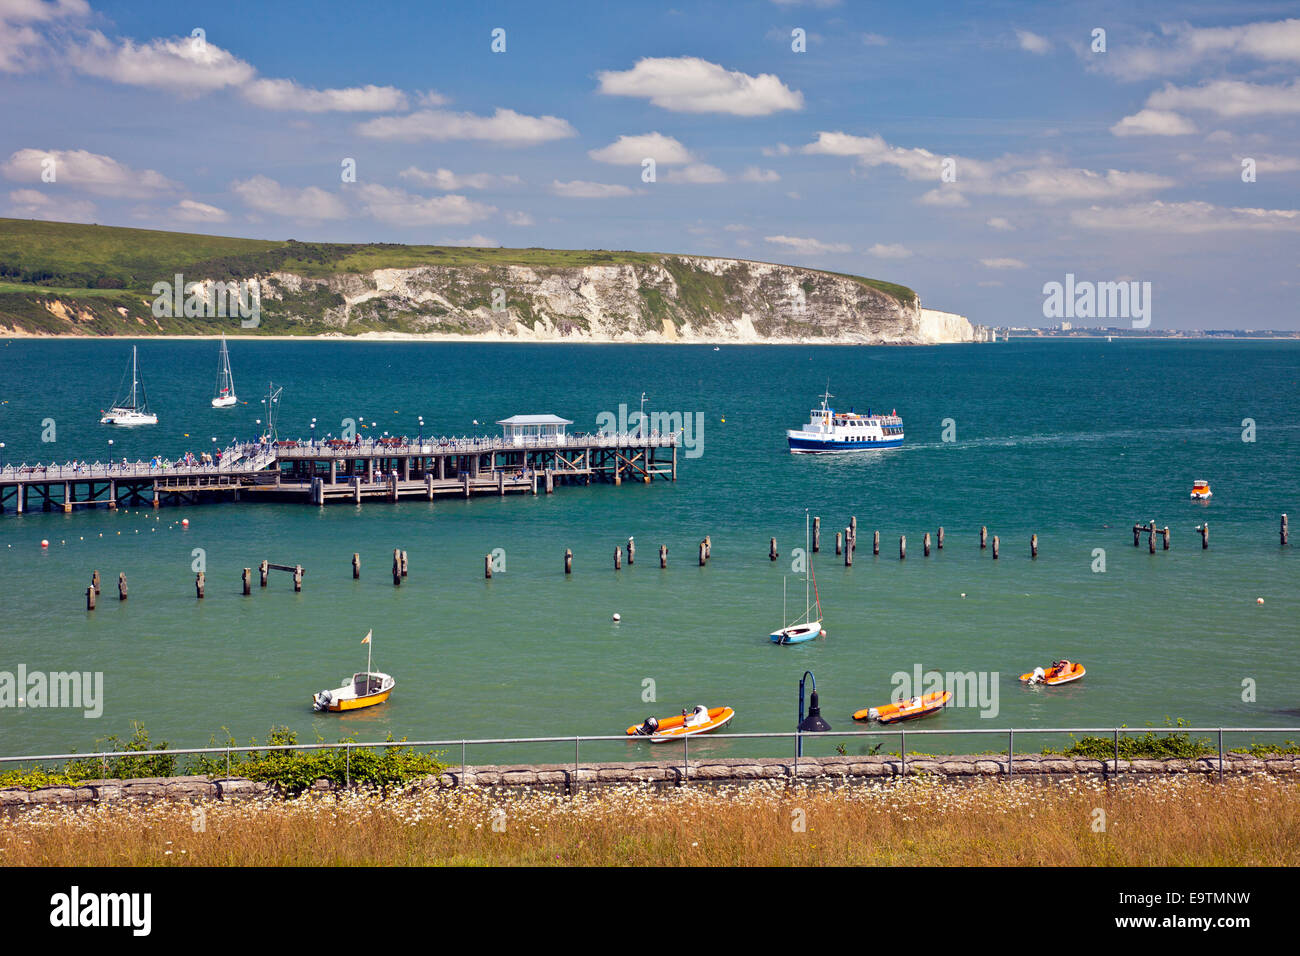 The 'Solent Scene' ferry from Poole arrives at the restored Victorian Pier in Swanage on the Jurassic Coast - Stock Image